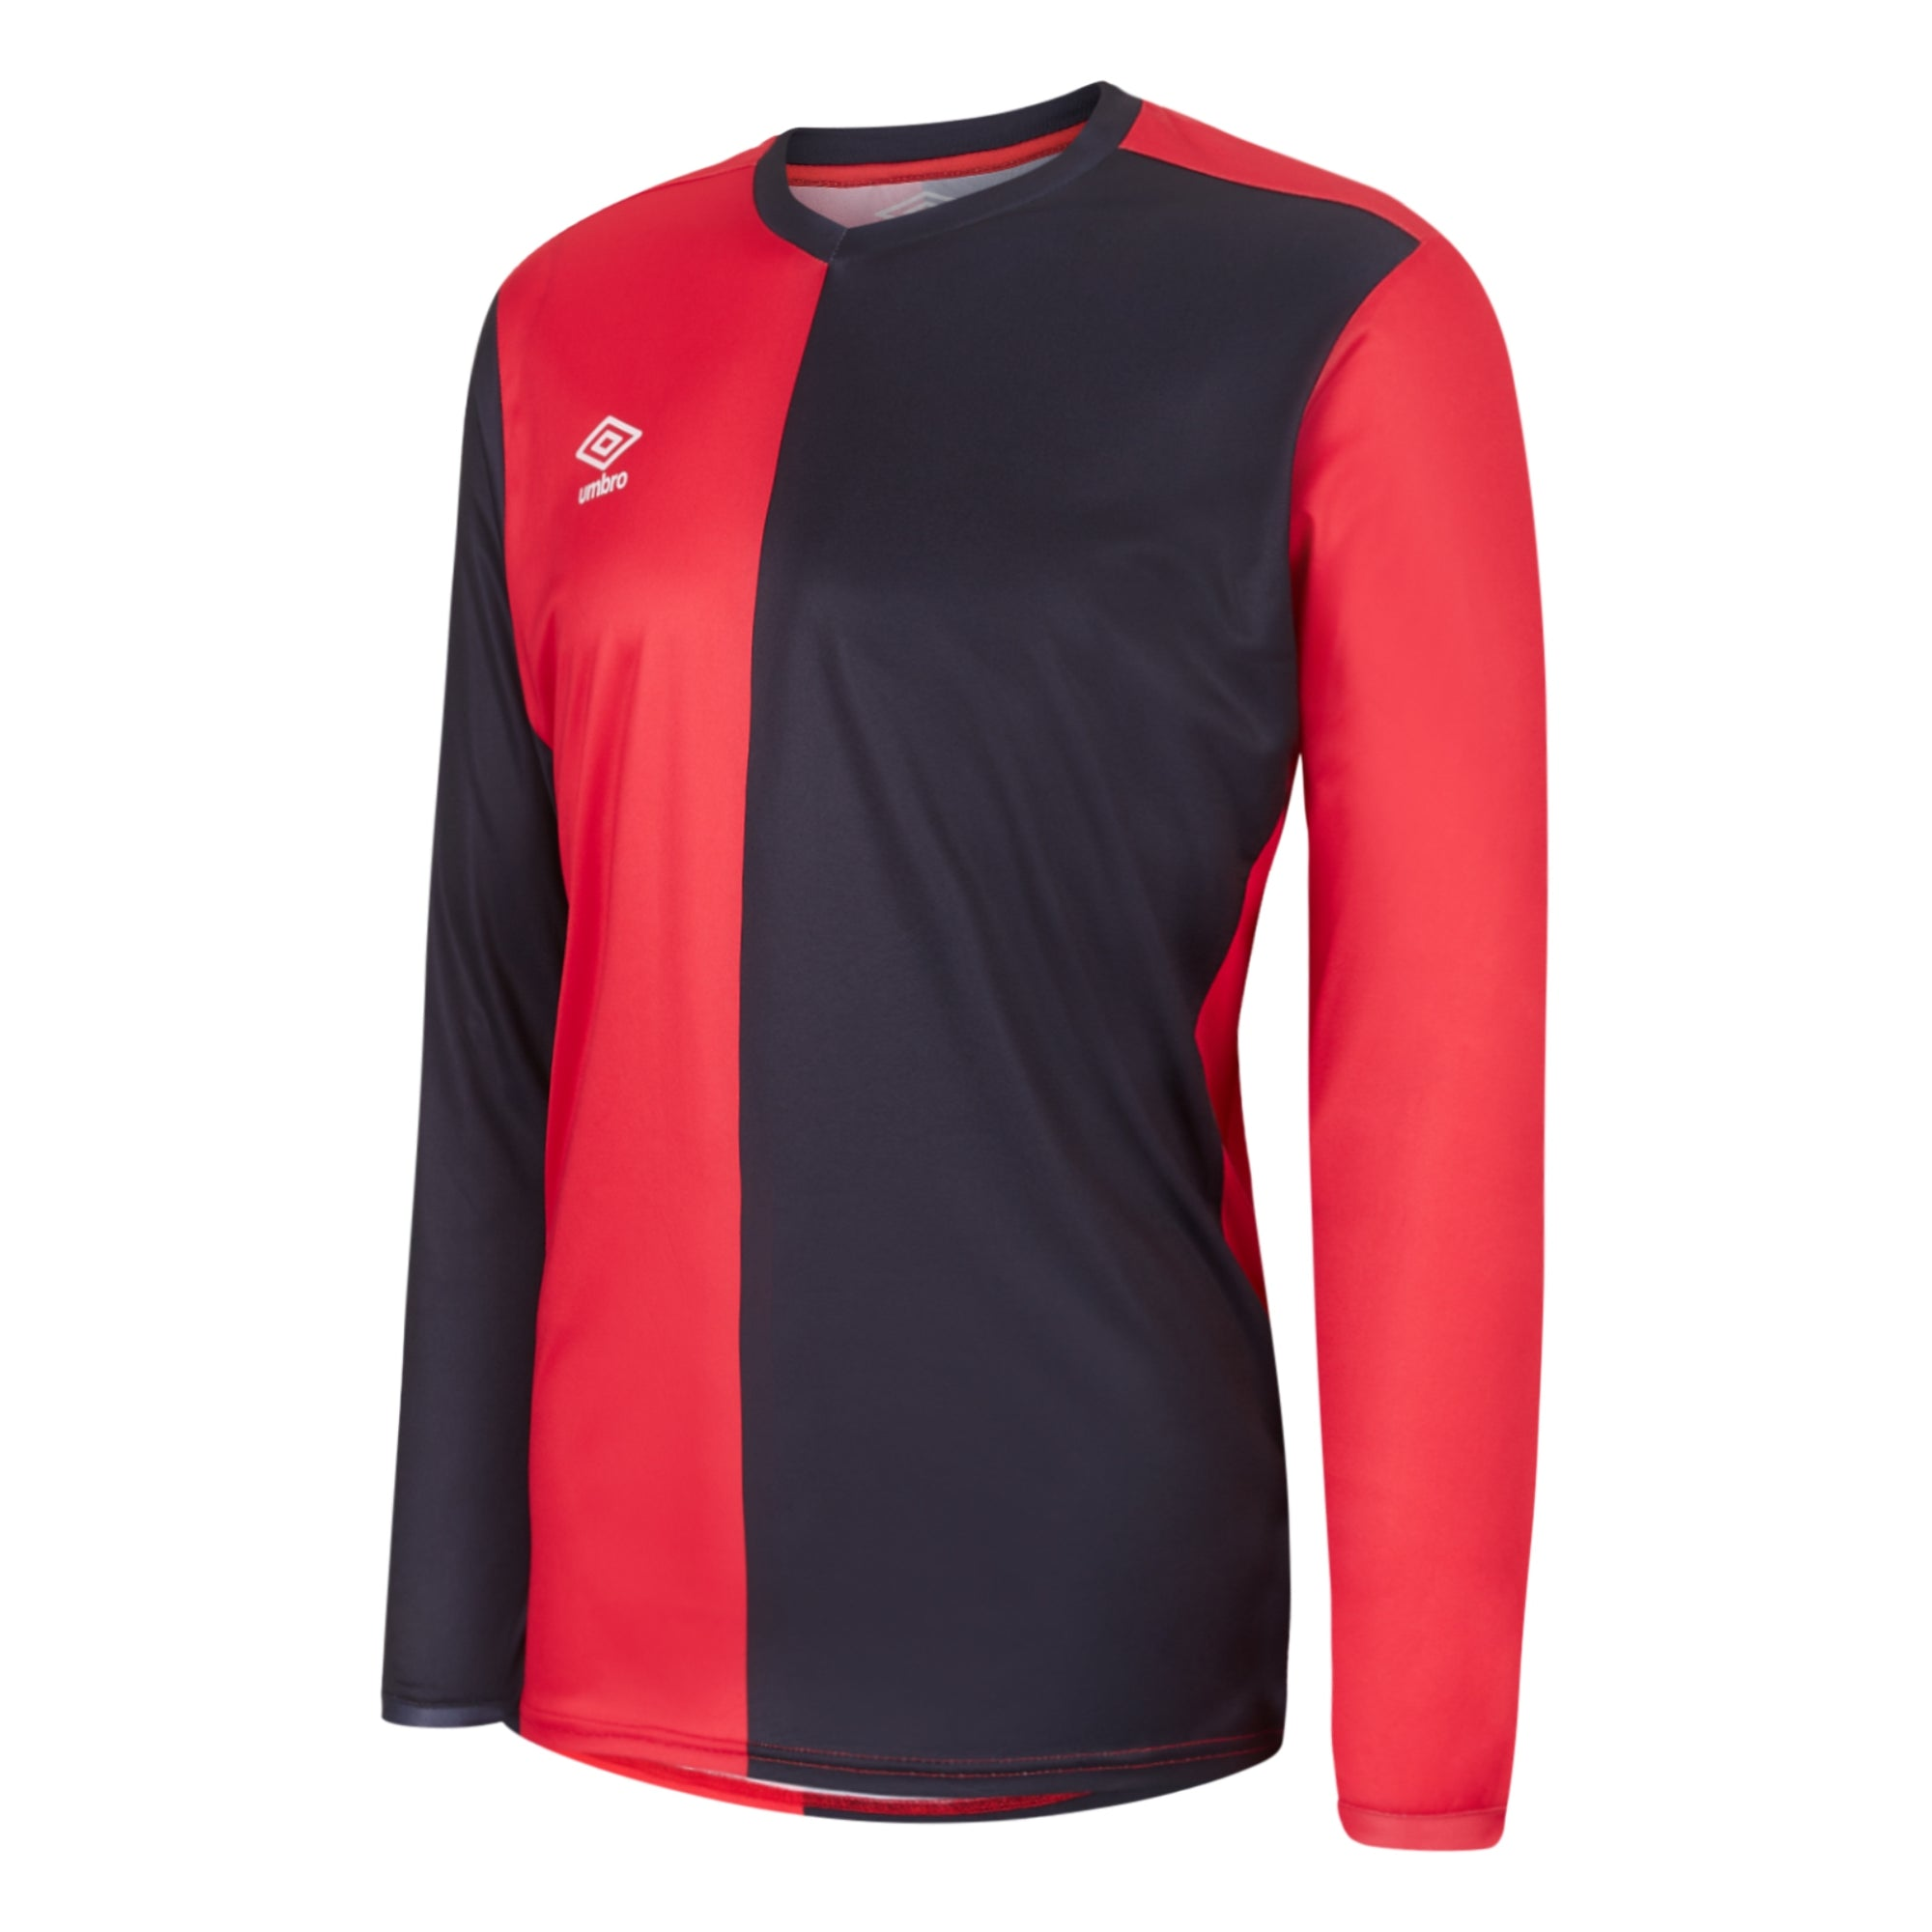 Umbro 50/50 LS Jersey - Vermillion/Black